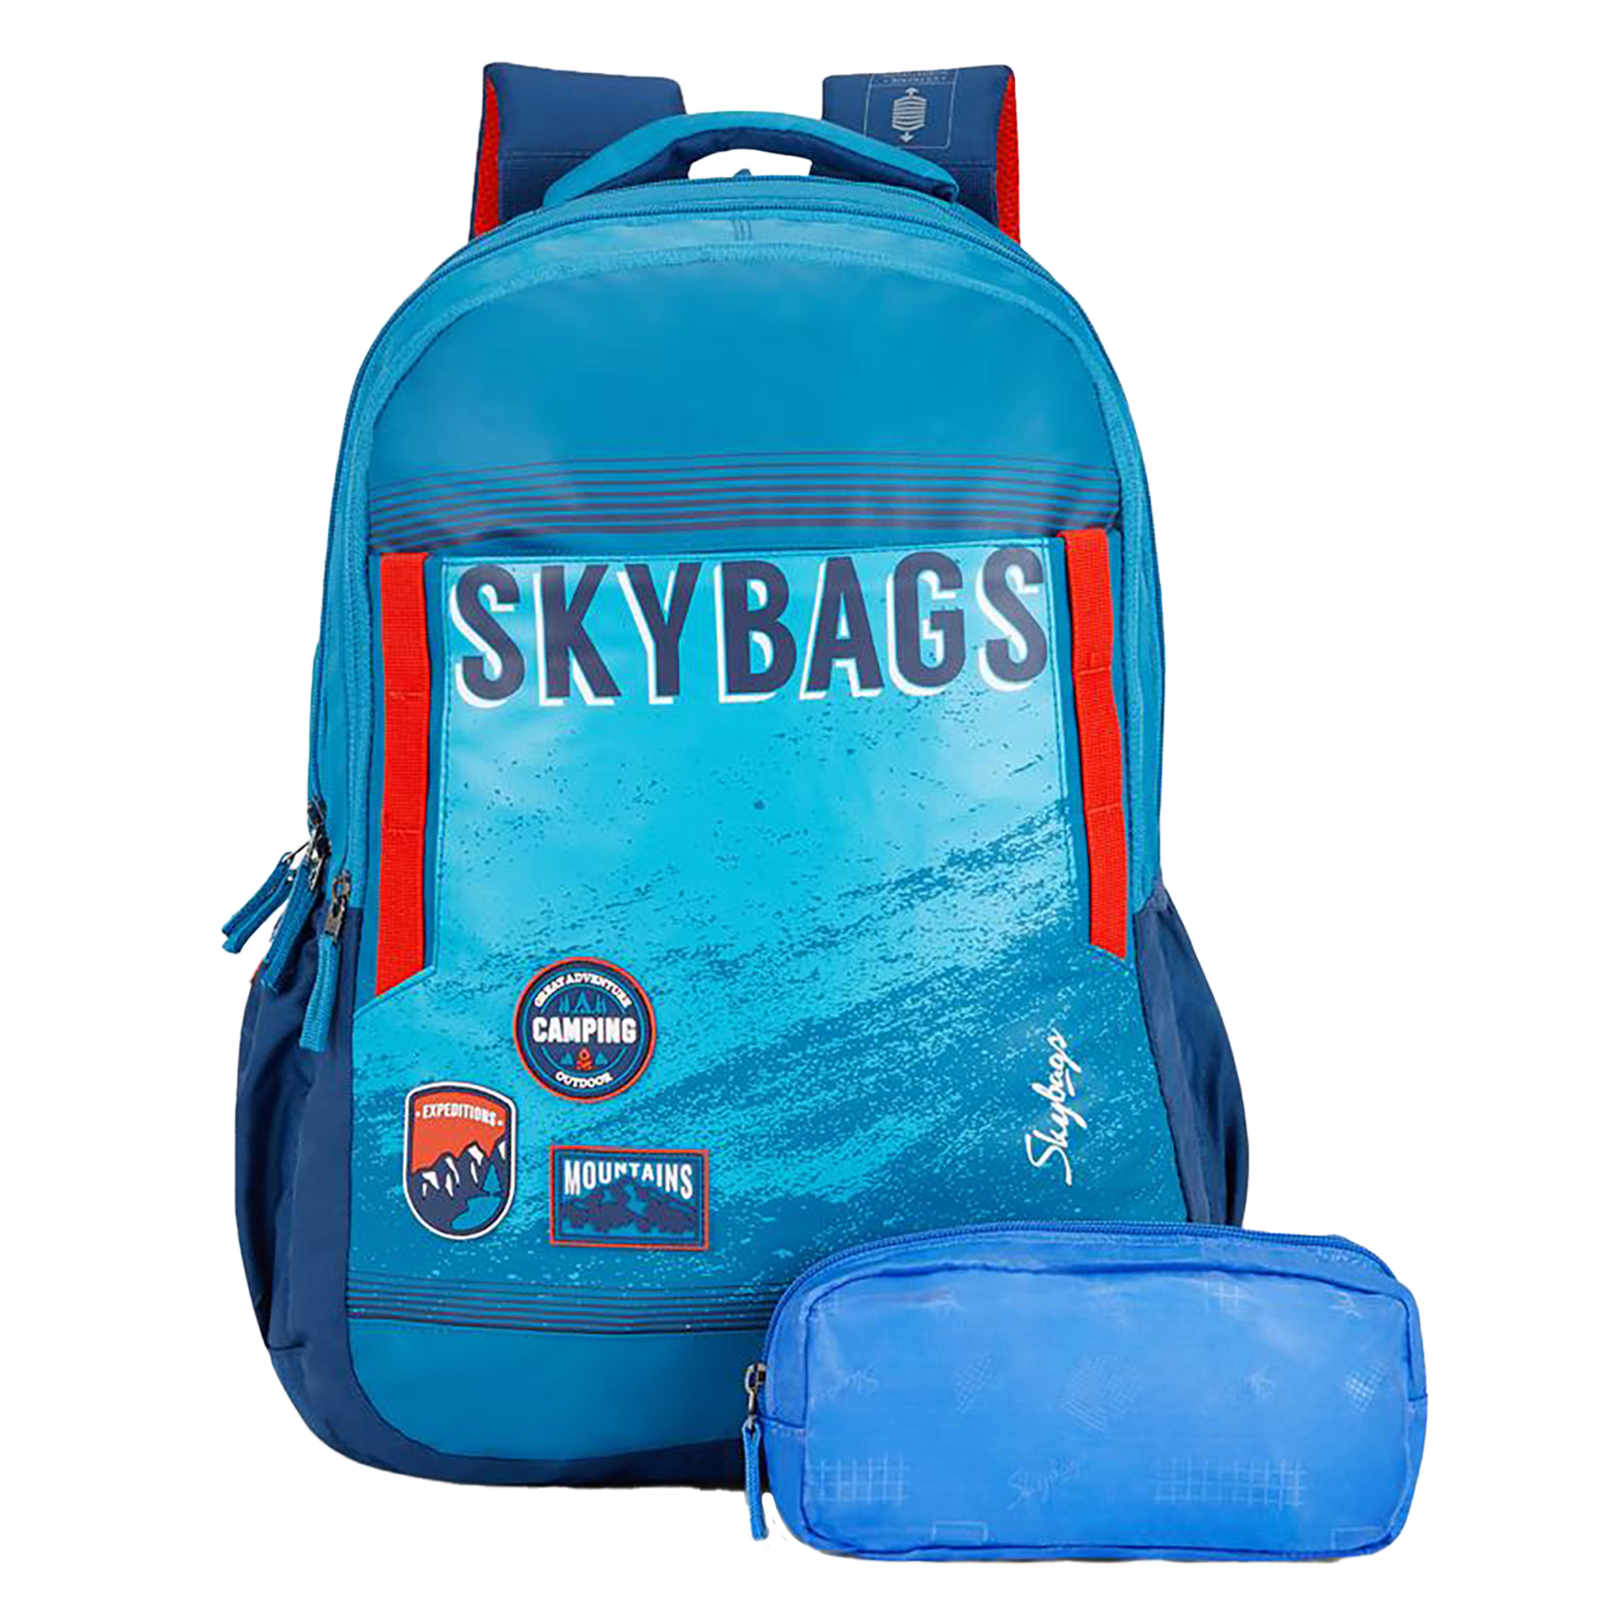 Sky Bags Astro Extra 03 36 Litres Mini Gucci Backpack (Rain Cover, BPASE3RBLU, Blue)_1